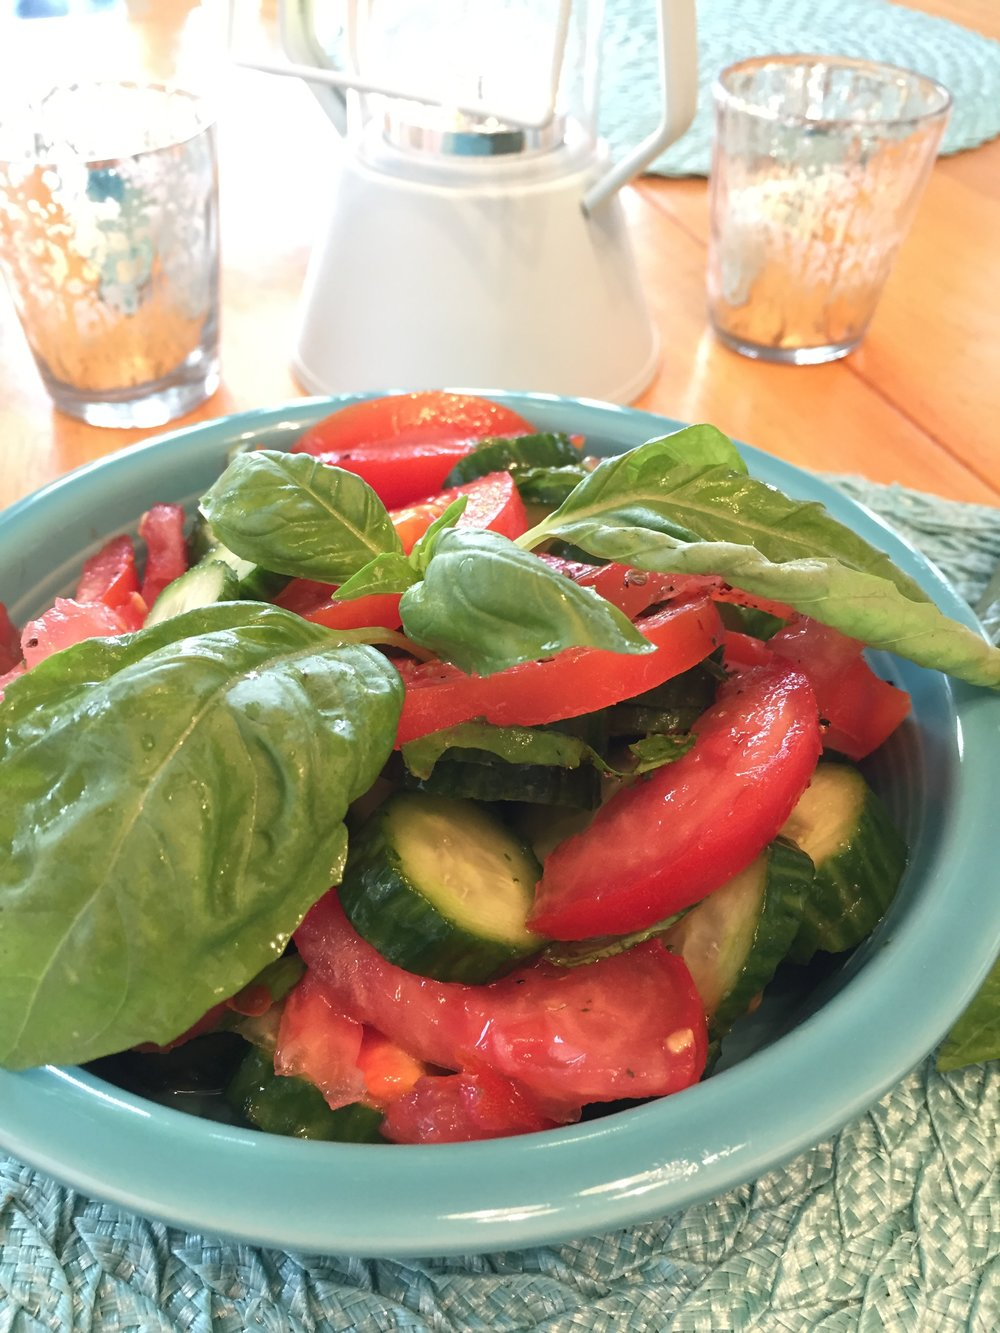 Tomato + Cucumber + Basil + Balsamic Vinegar + Pepper + (a light drizzle of) Olive Oil -